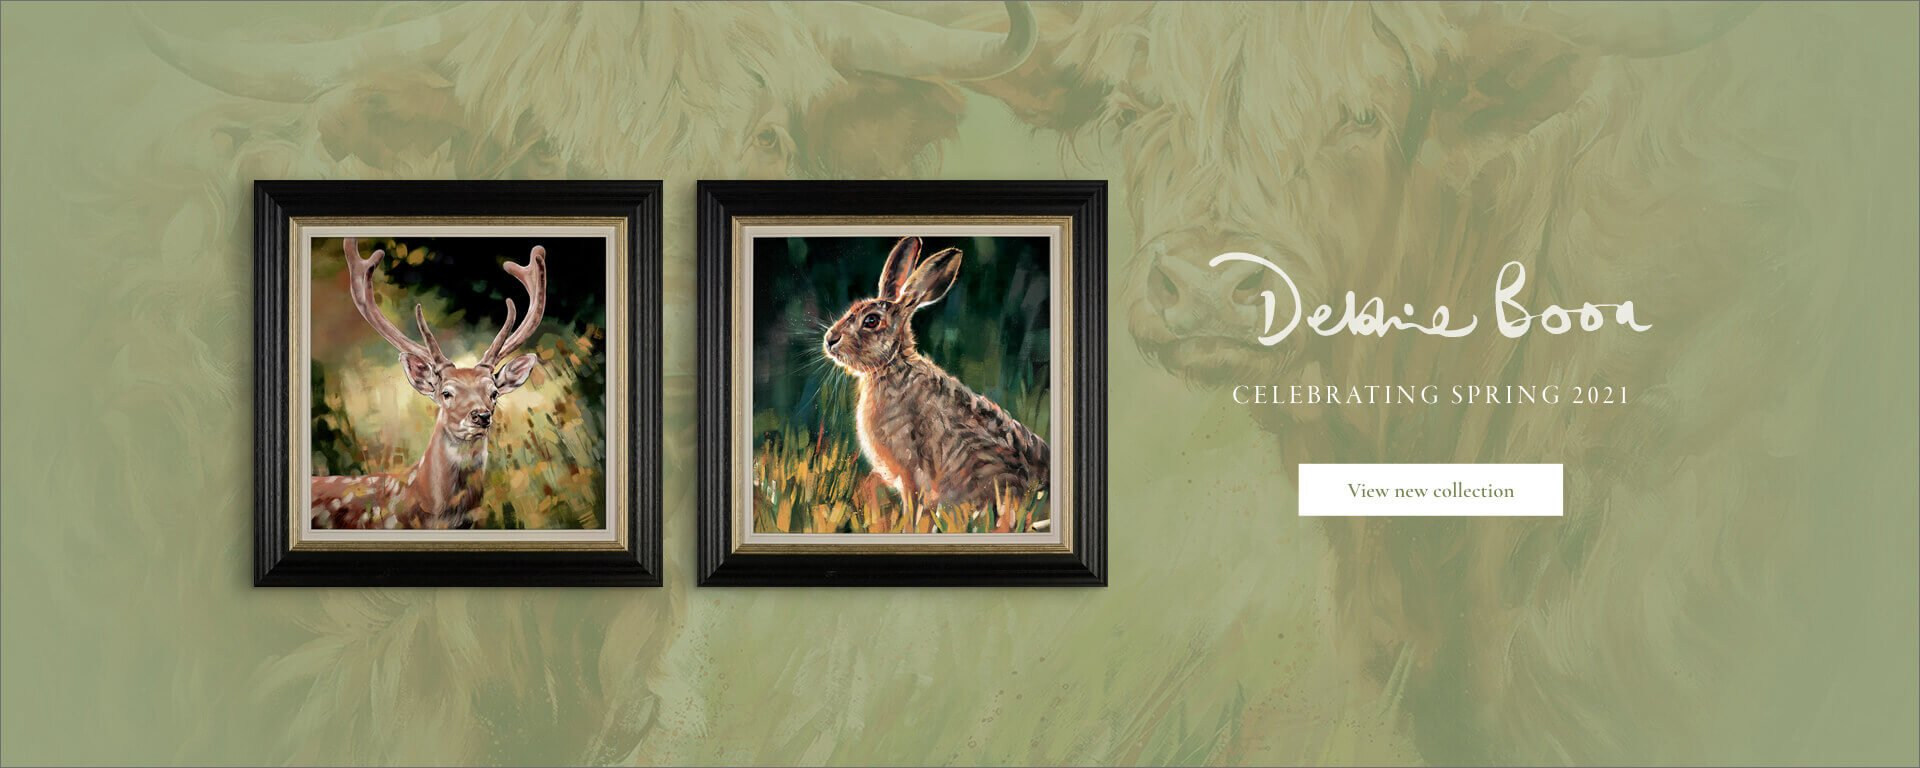 Celebrate Spring with this New and Exciting Collection from Debbie Boon!